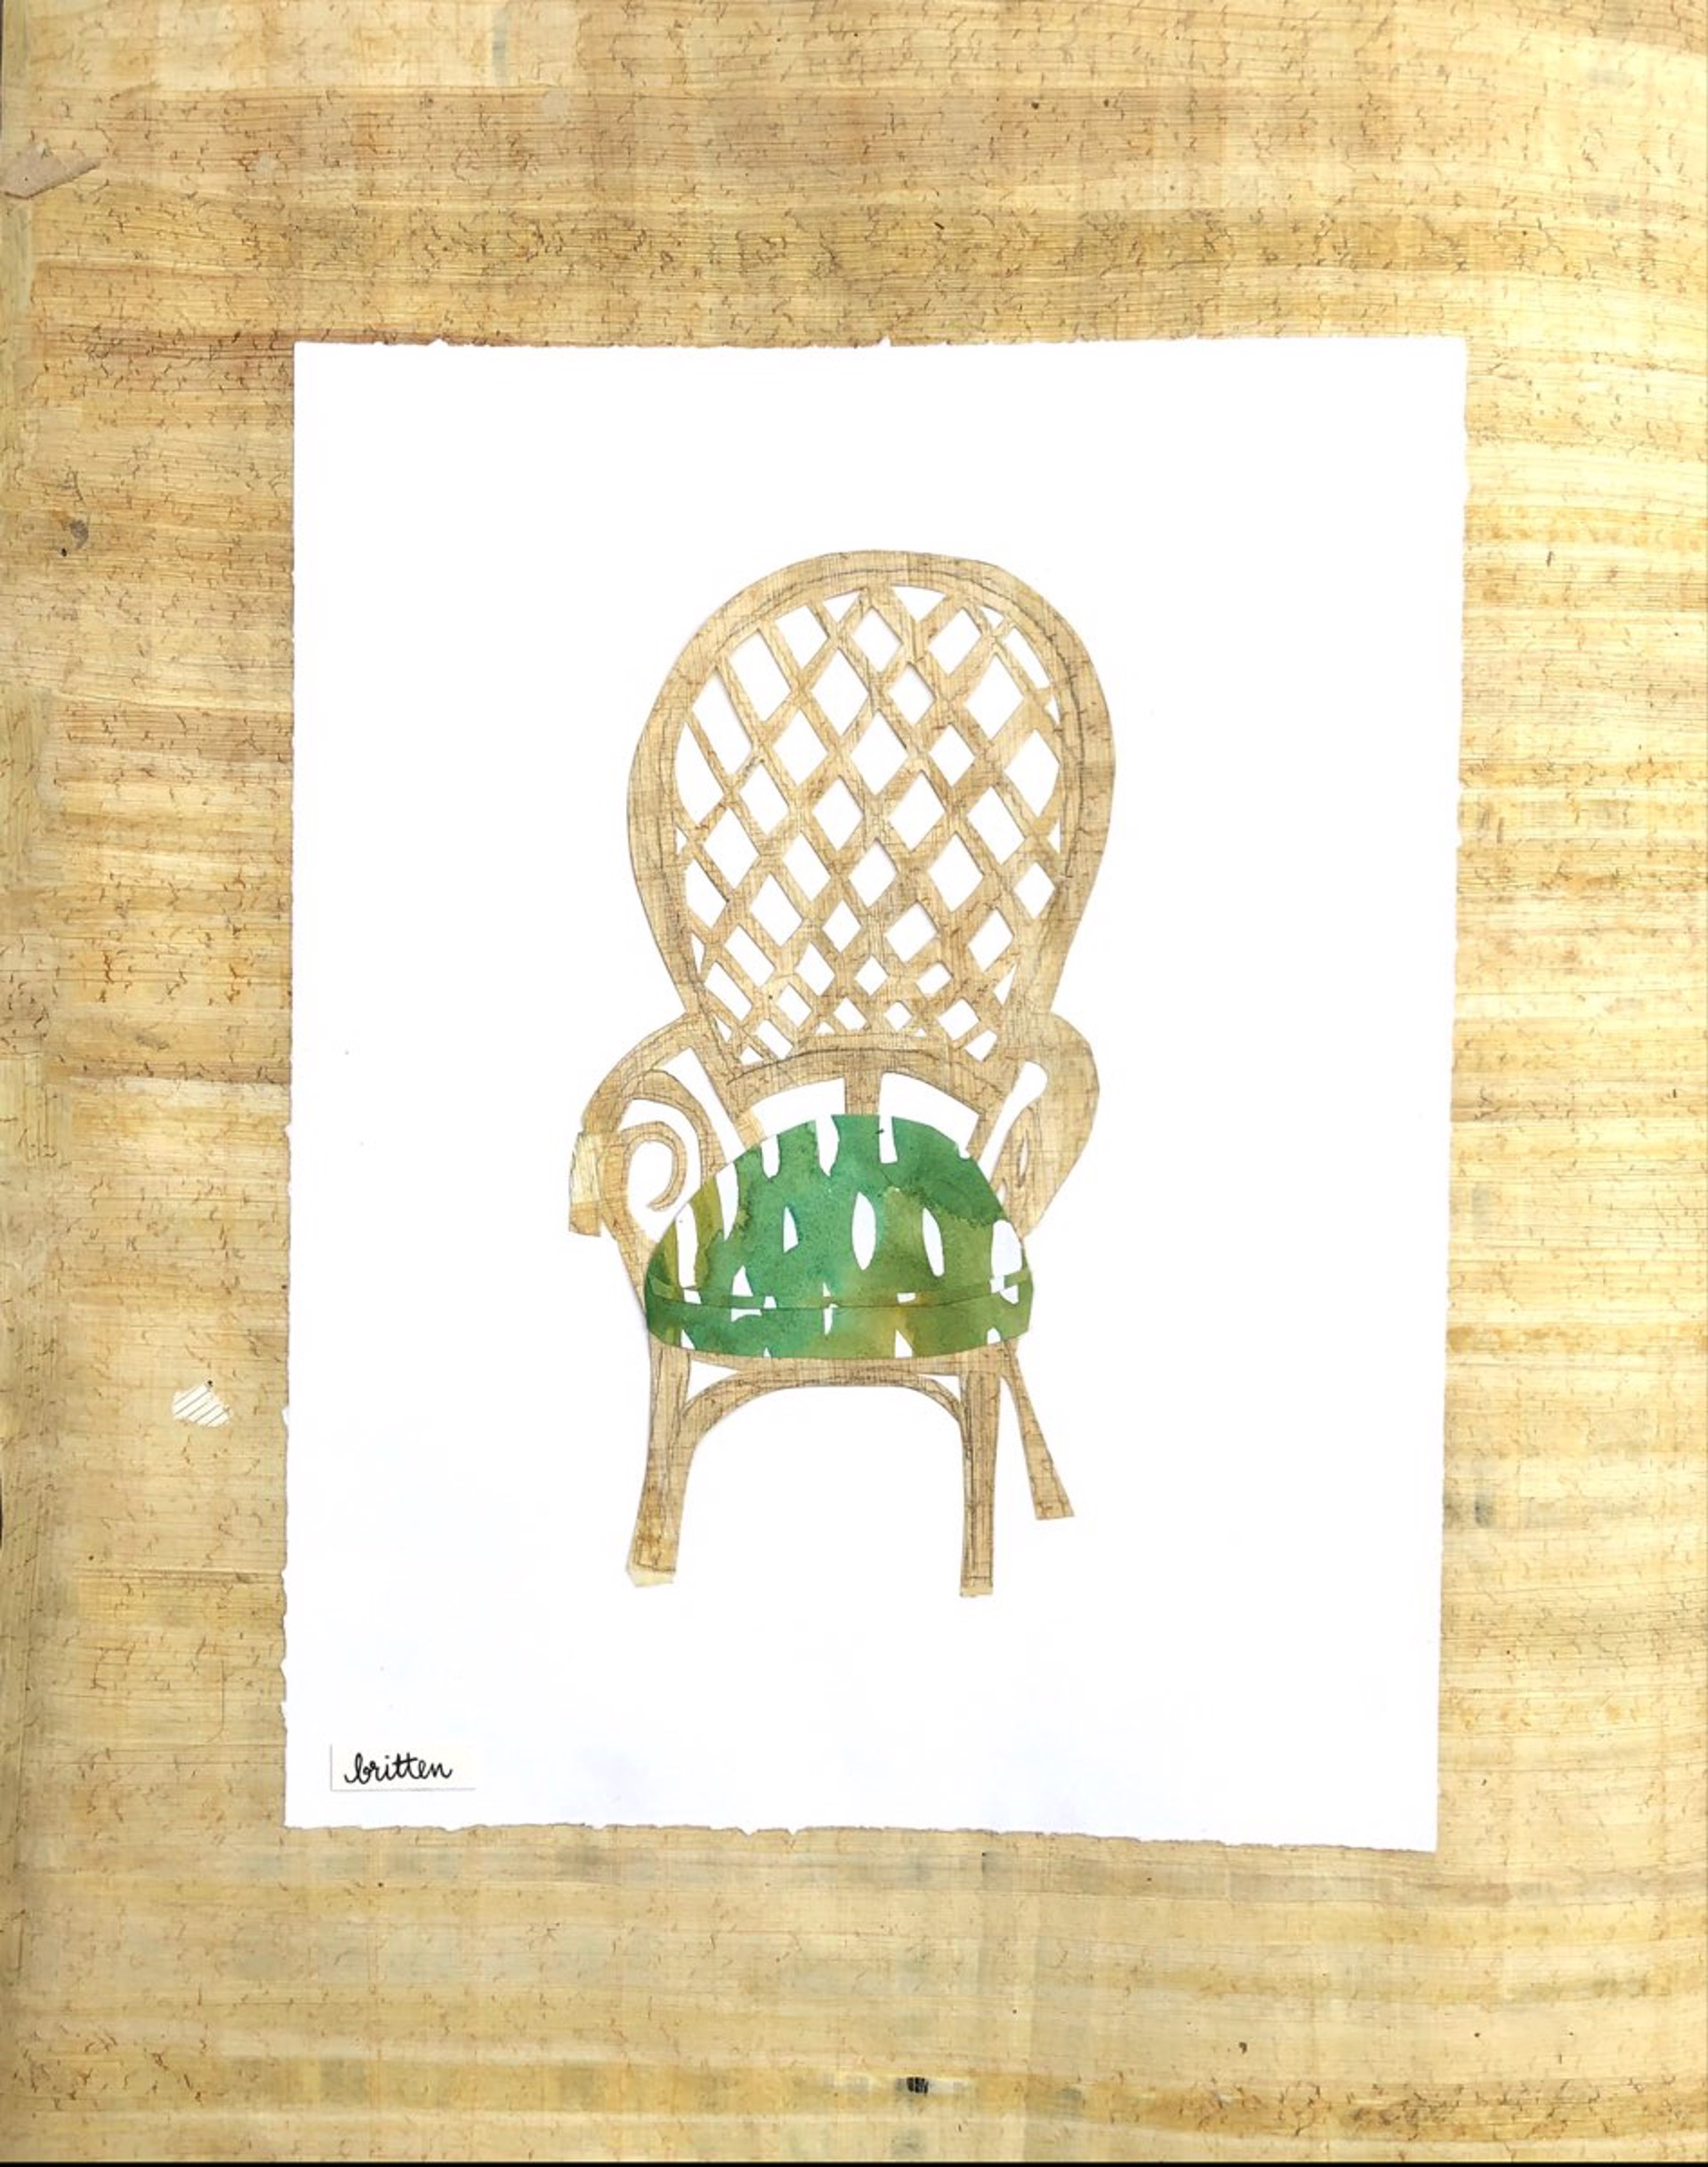 Peacock Chair II by Meg Britten